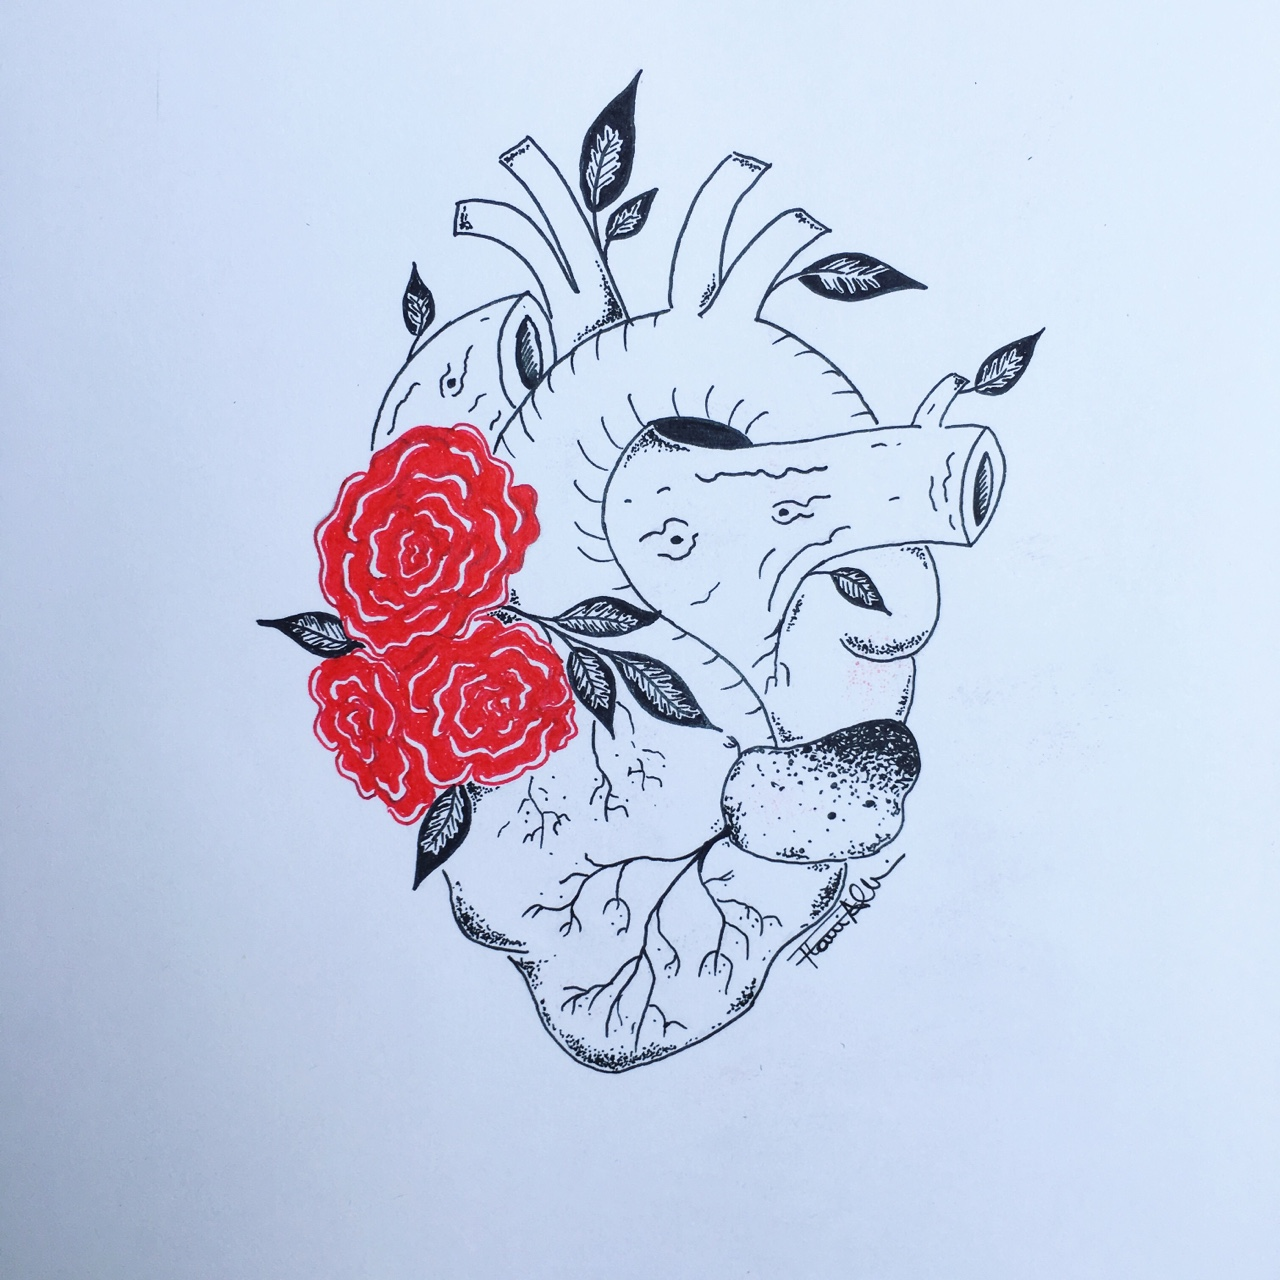 Drawn red rose pen drawing On flowers pen All hand